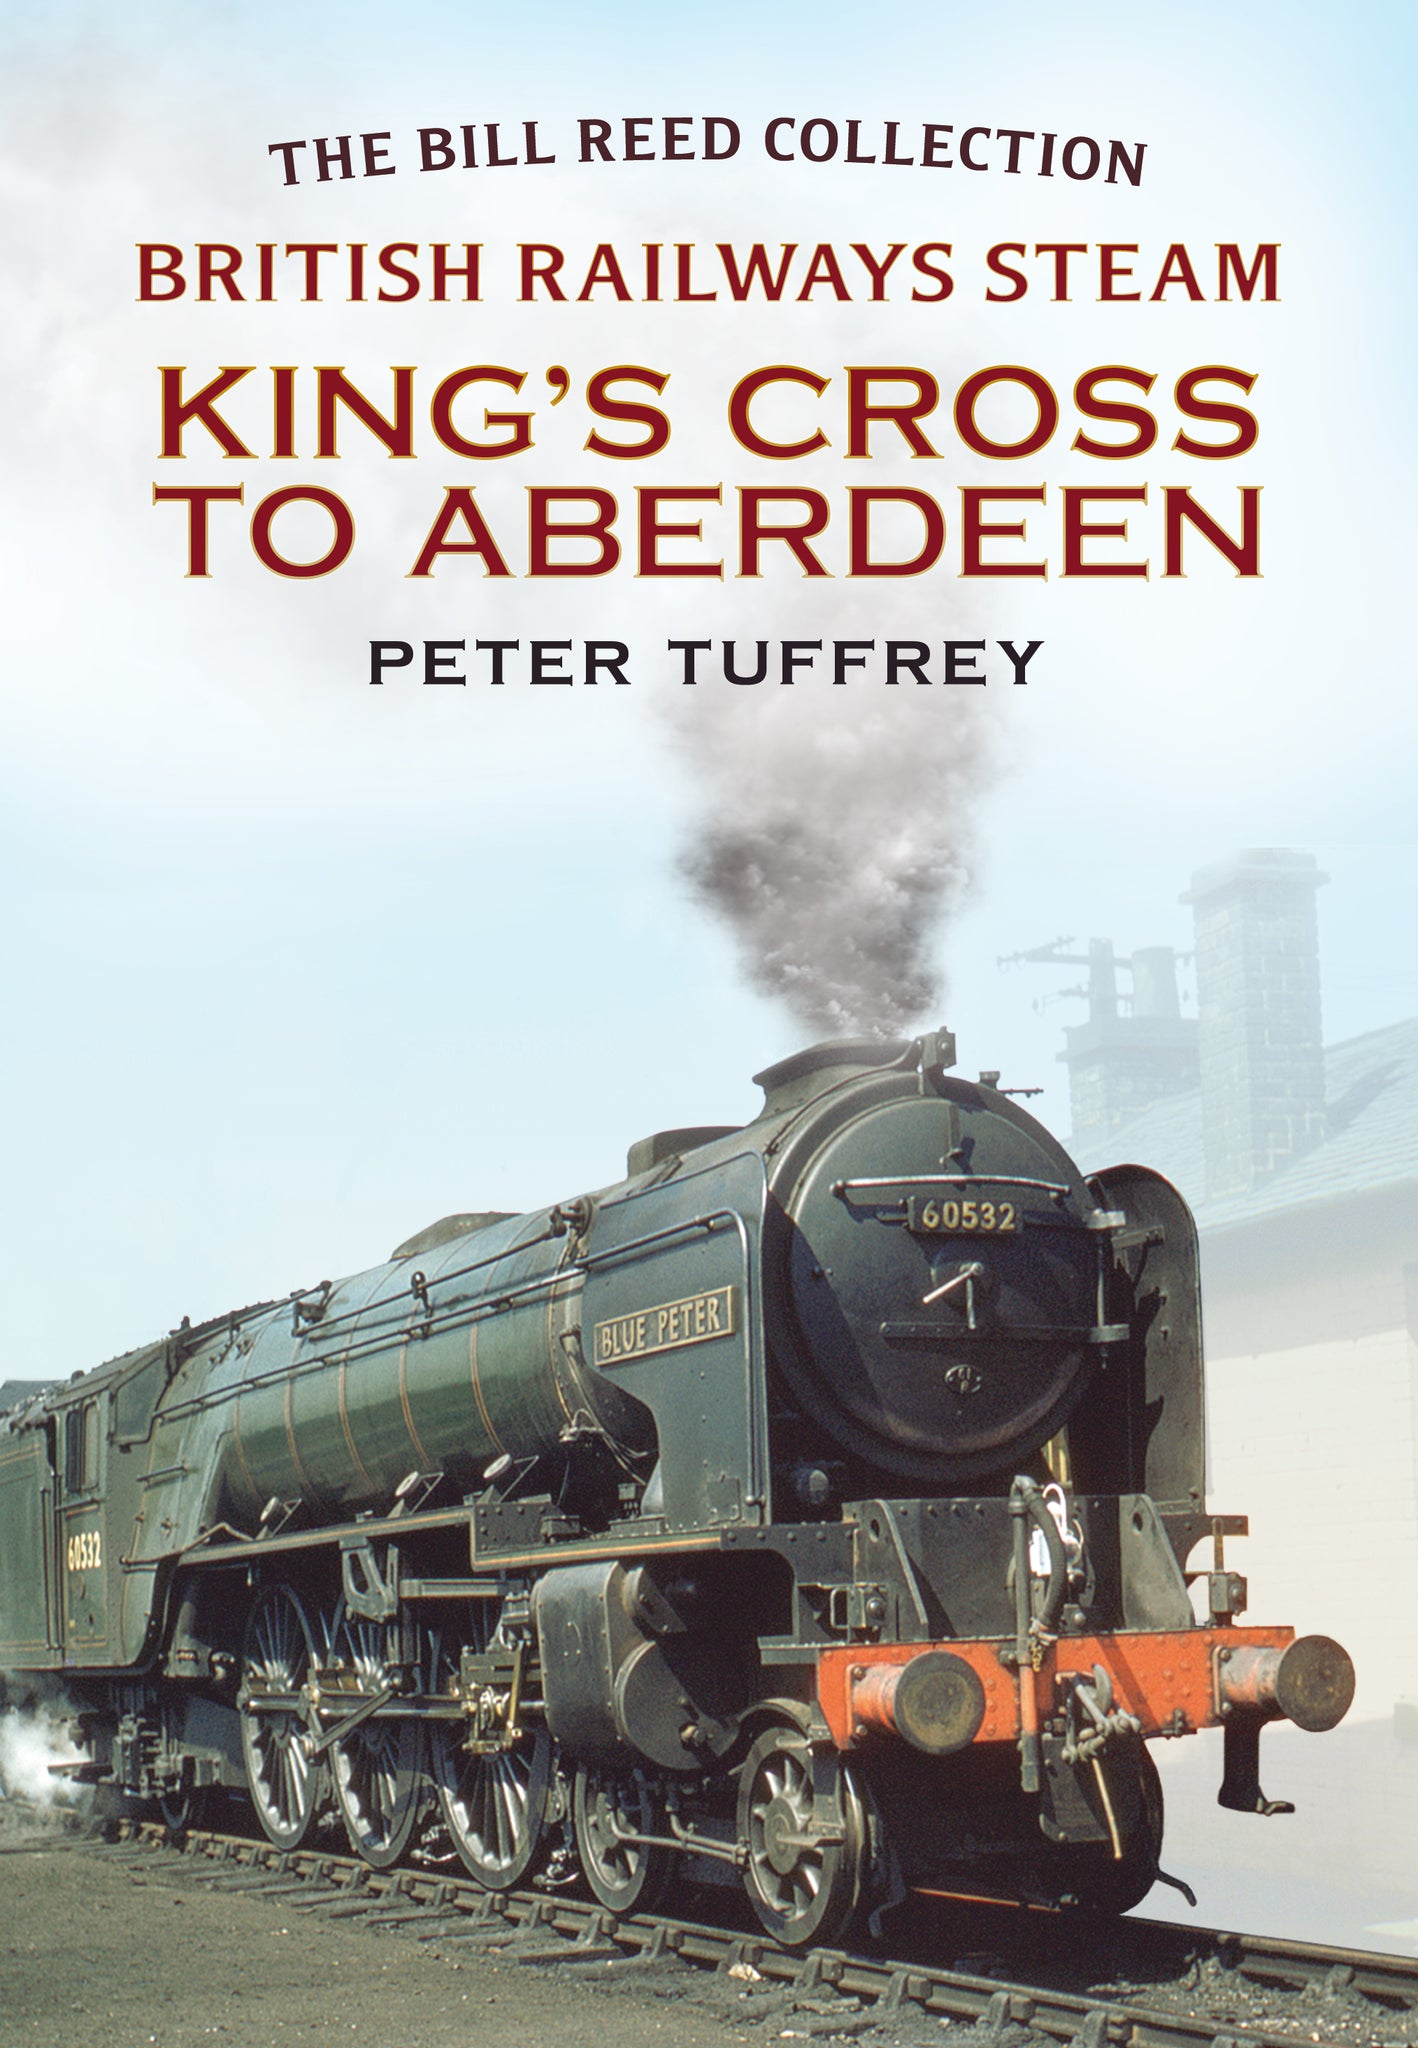 British Railways Steam: King's Cross to Aberdeen (The Bill Reed Collection) - available now from Fonthill Media